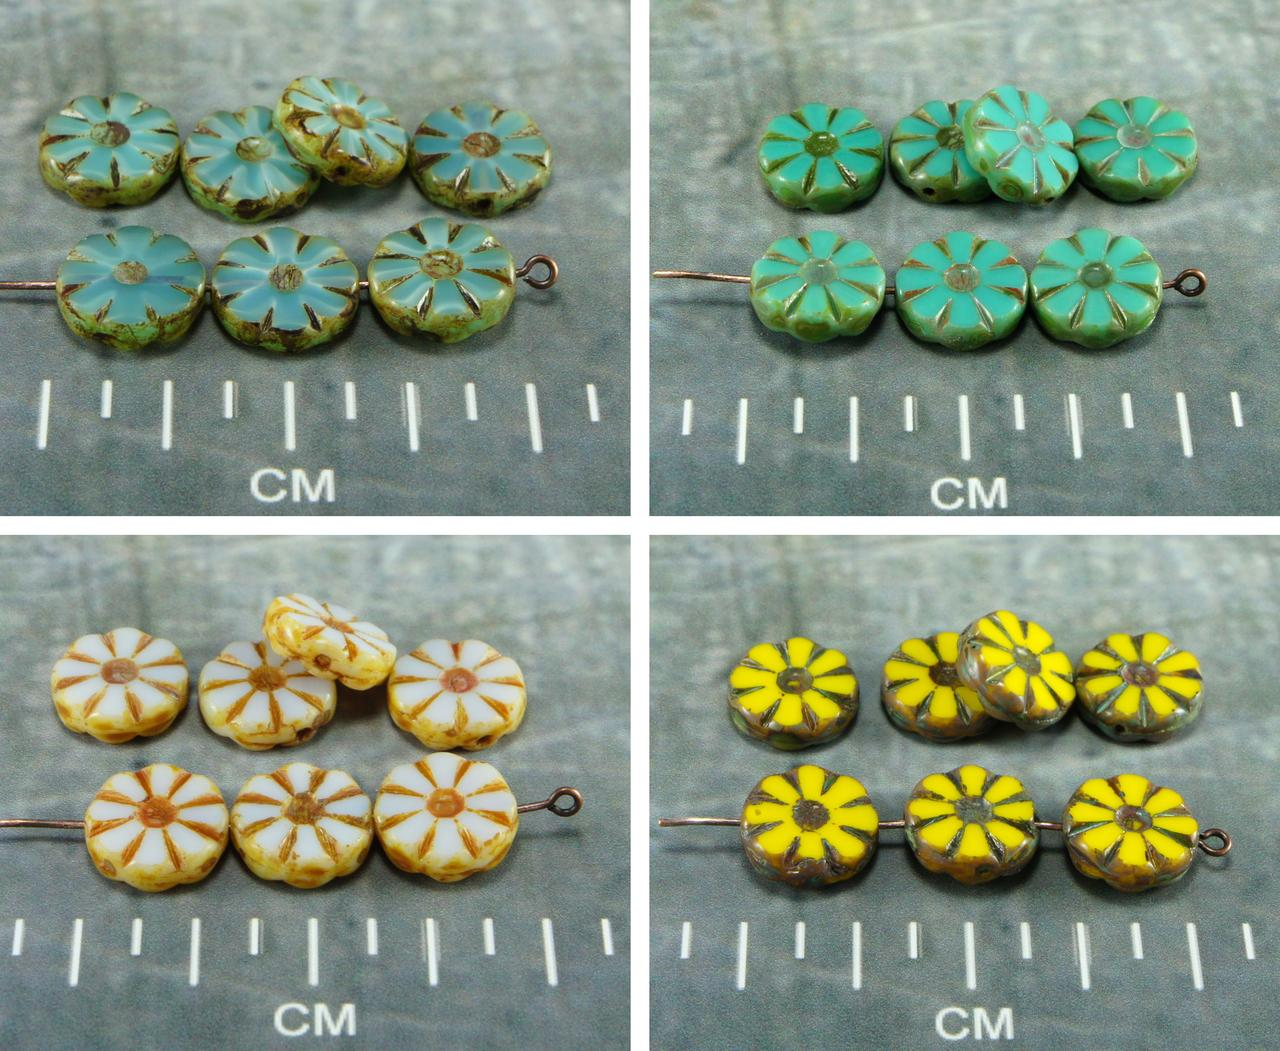 Picasso Table Cut Flower Flat Coin Czech Glass Beads 12mm 8pcs for $2.83 from Czech Beads Exclusive